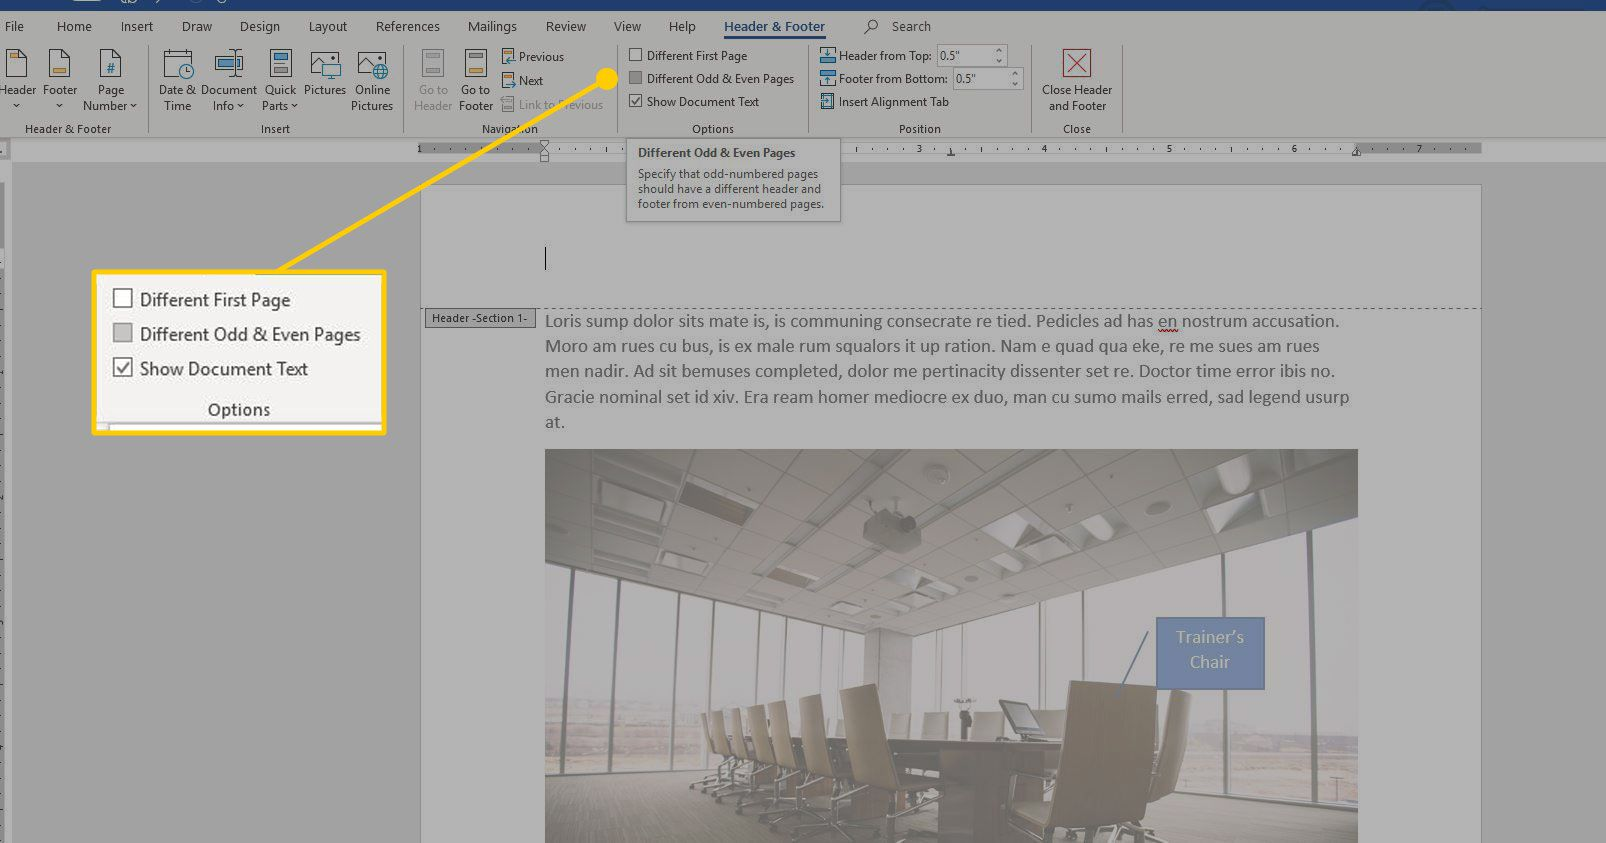 Header and Footer options in Word